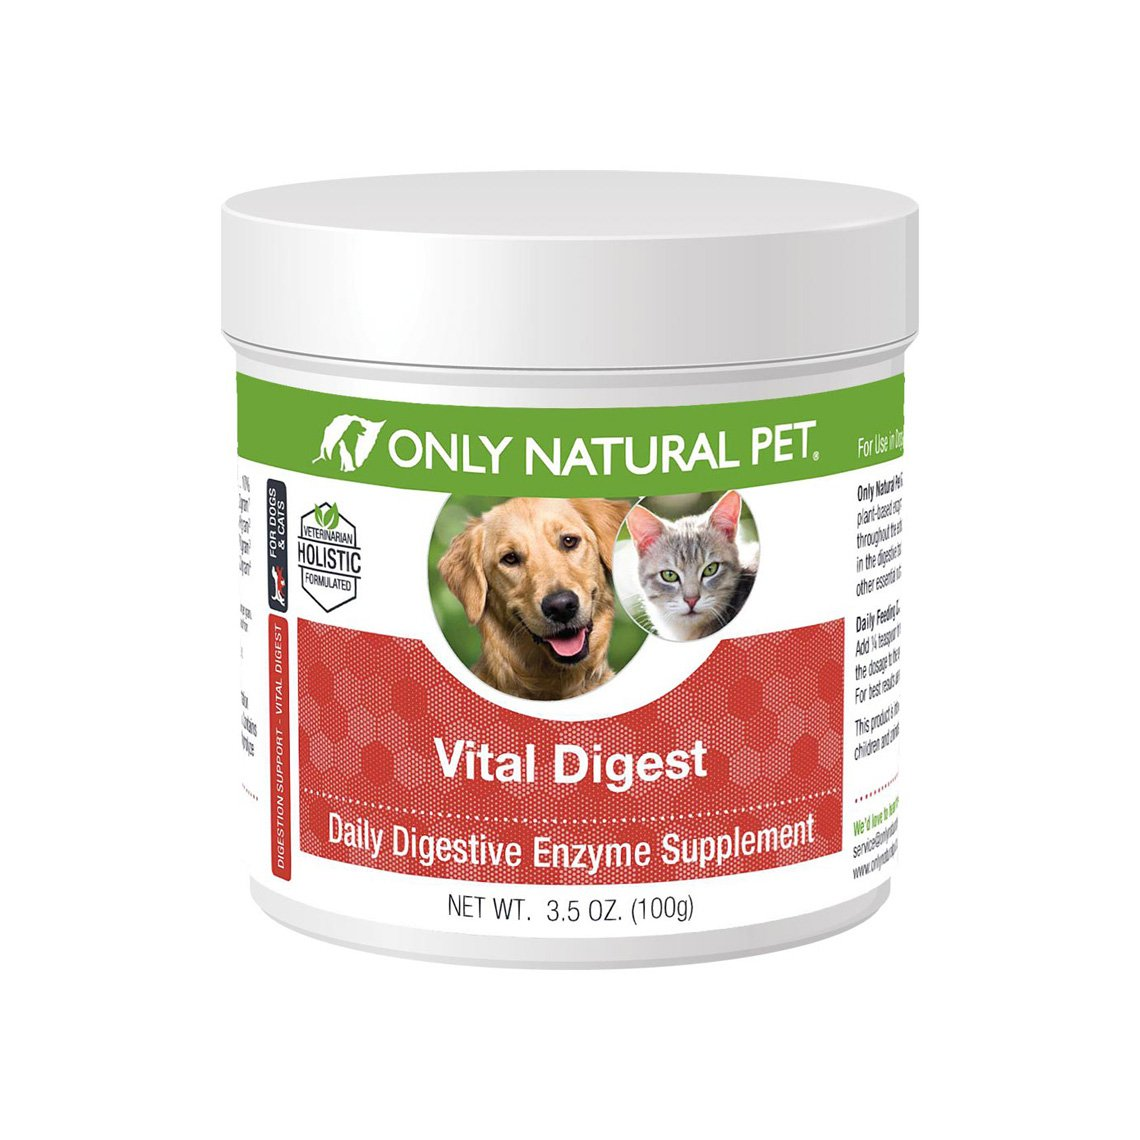 Only Natural Pet Vital Digest Digestive Enzymes for Dogs & Cats